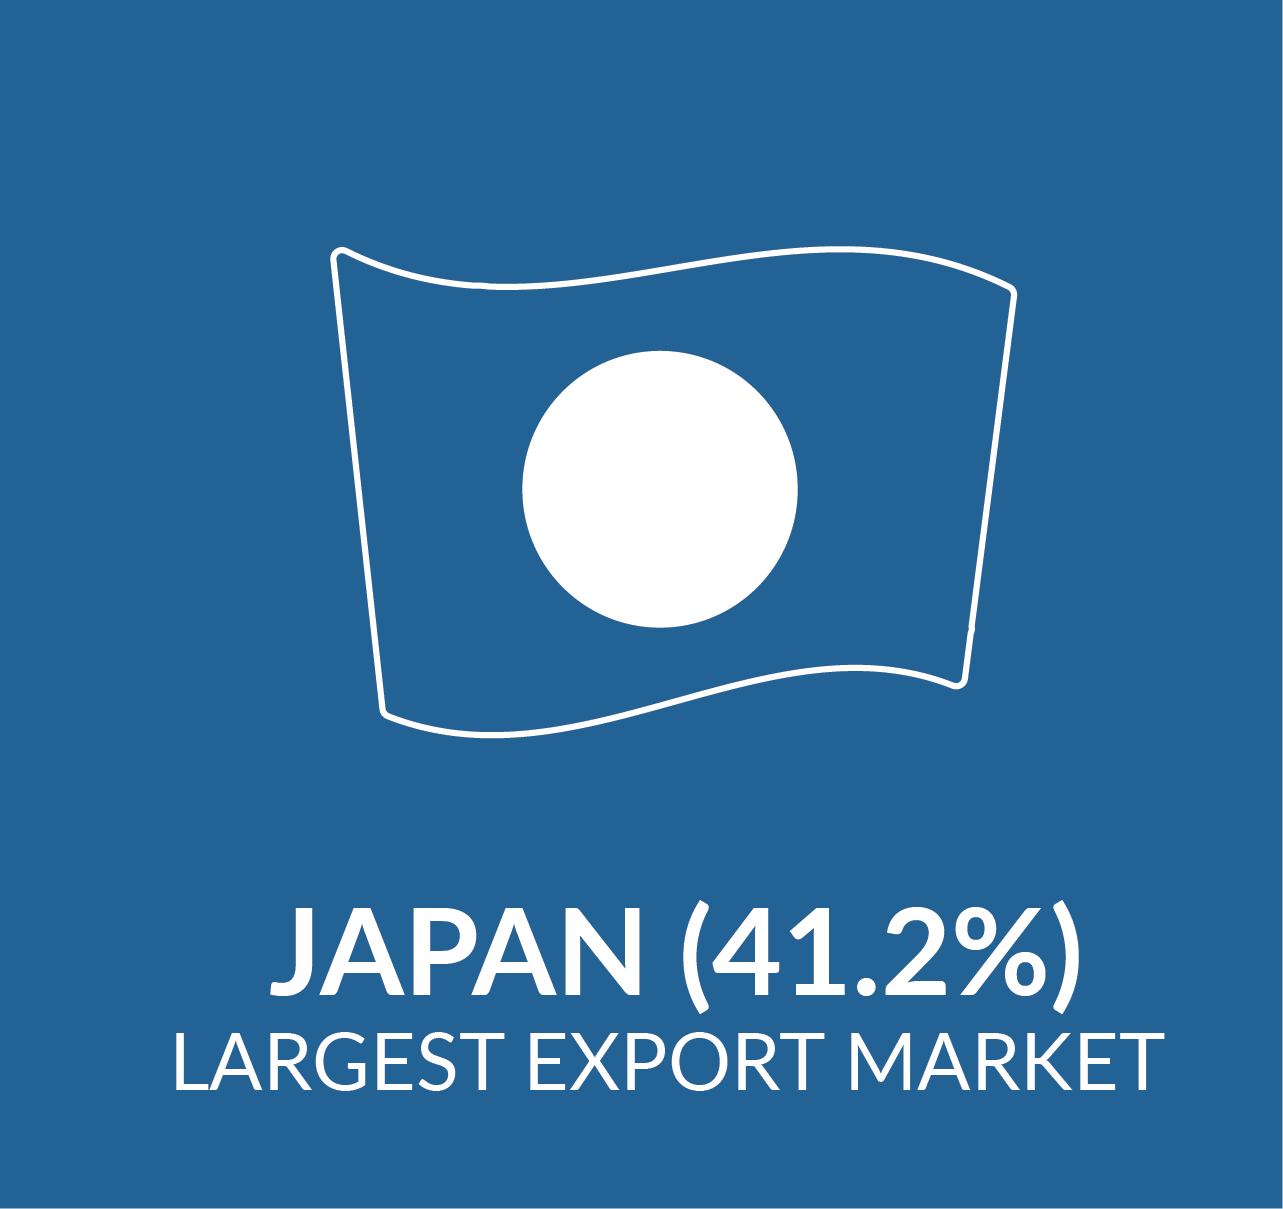 Icon showing Japan as the largest export market